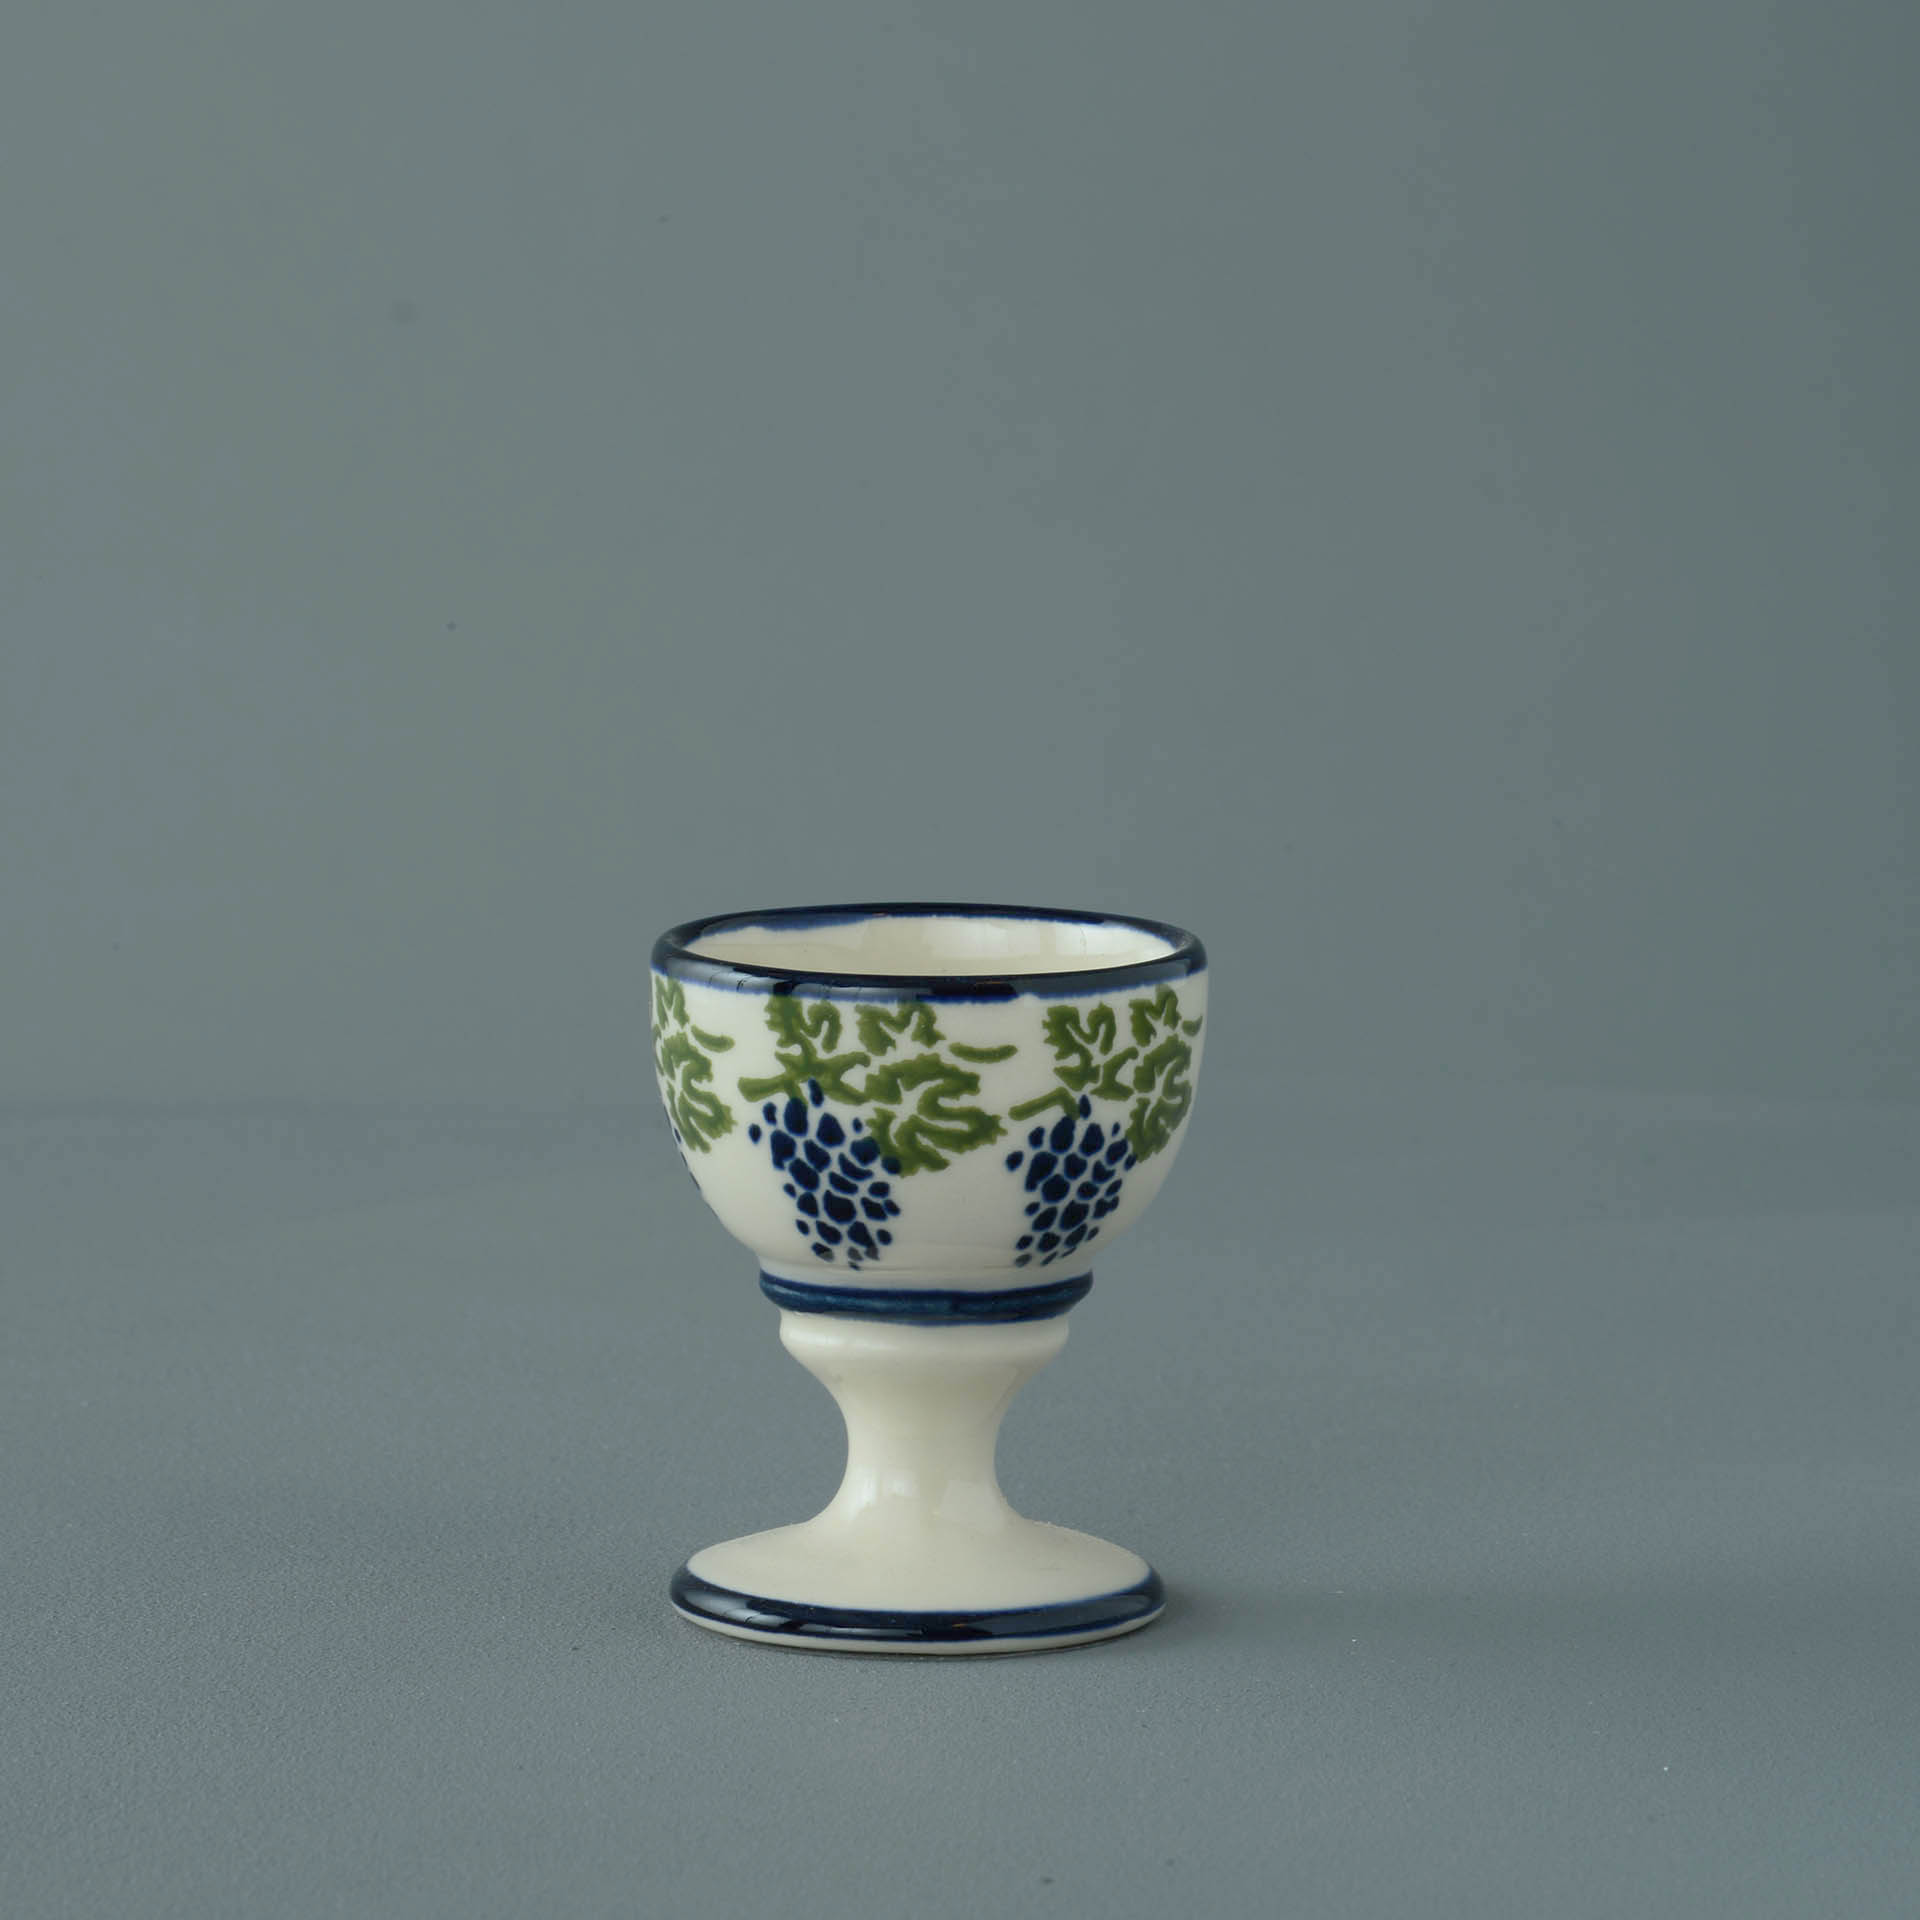 Grapes and Vine Egg cup 6.3 x 5.2cm